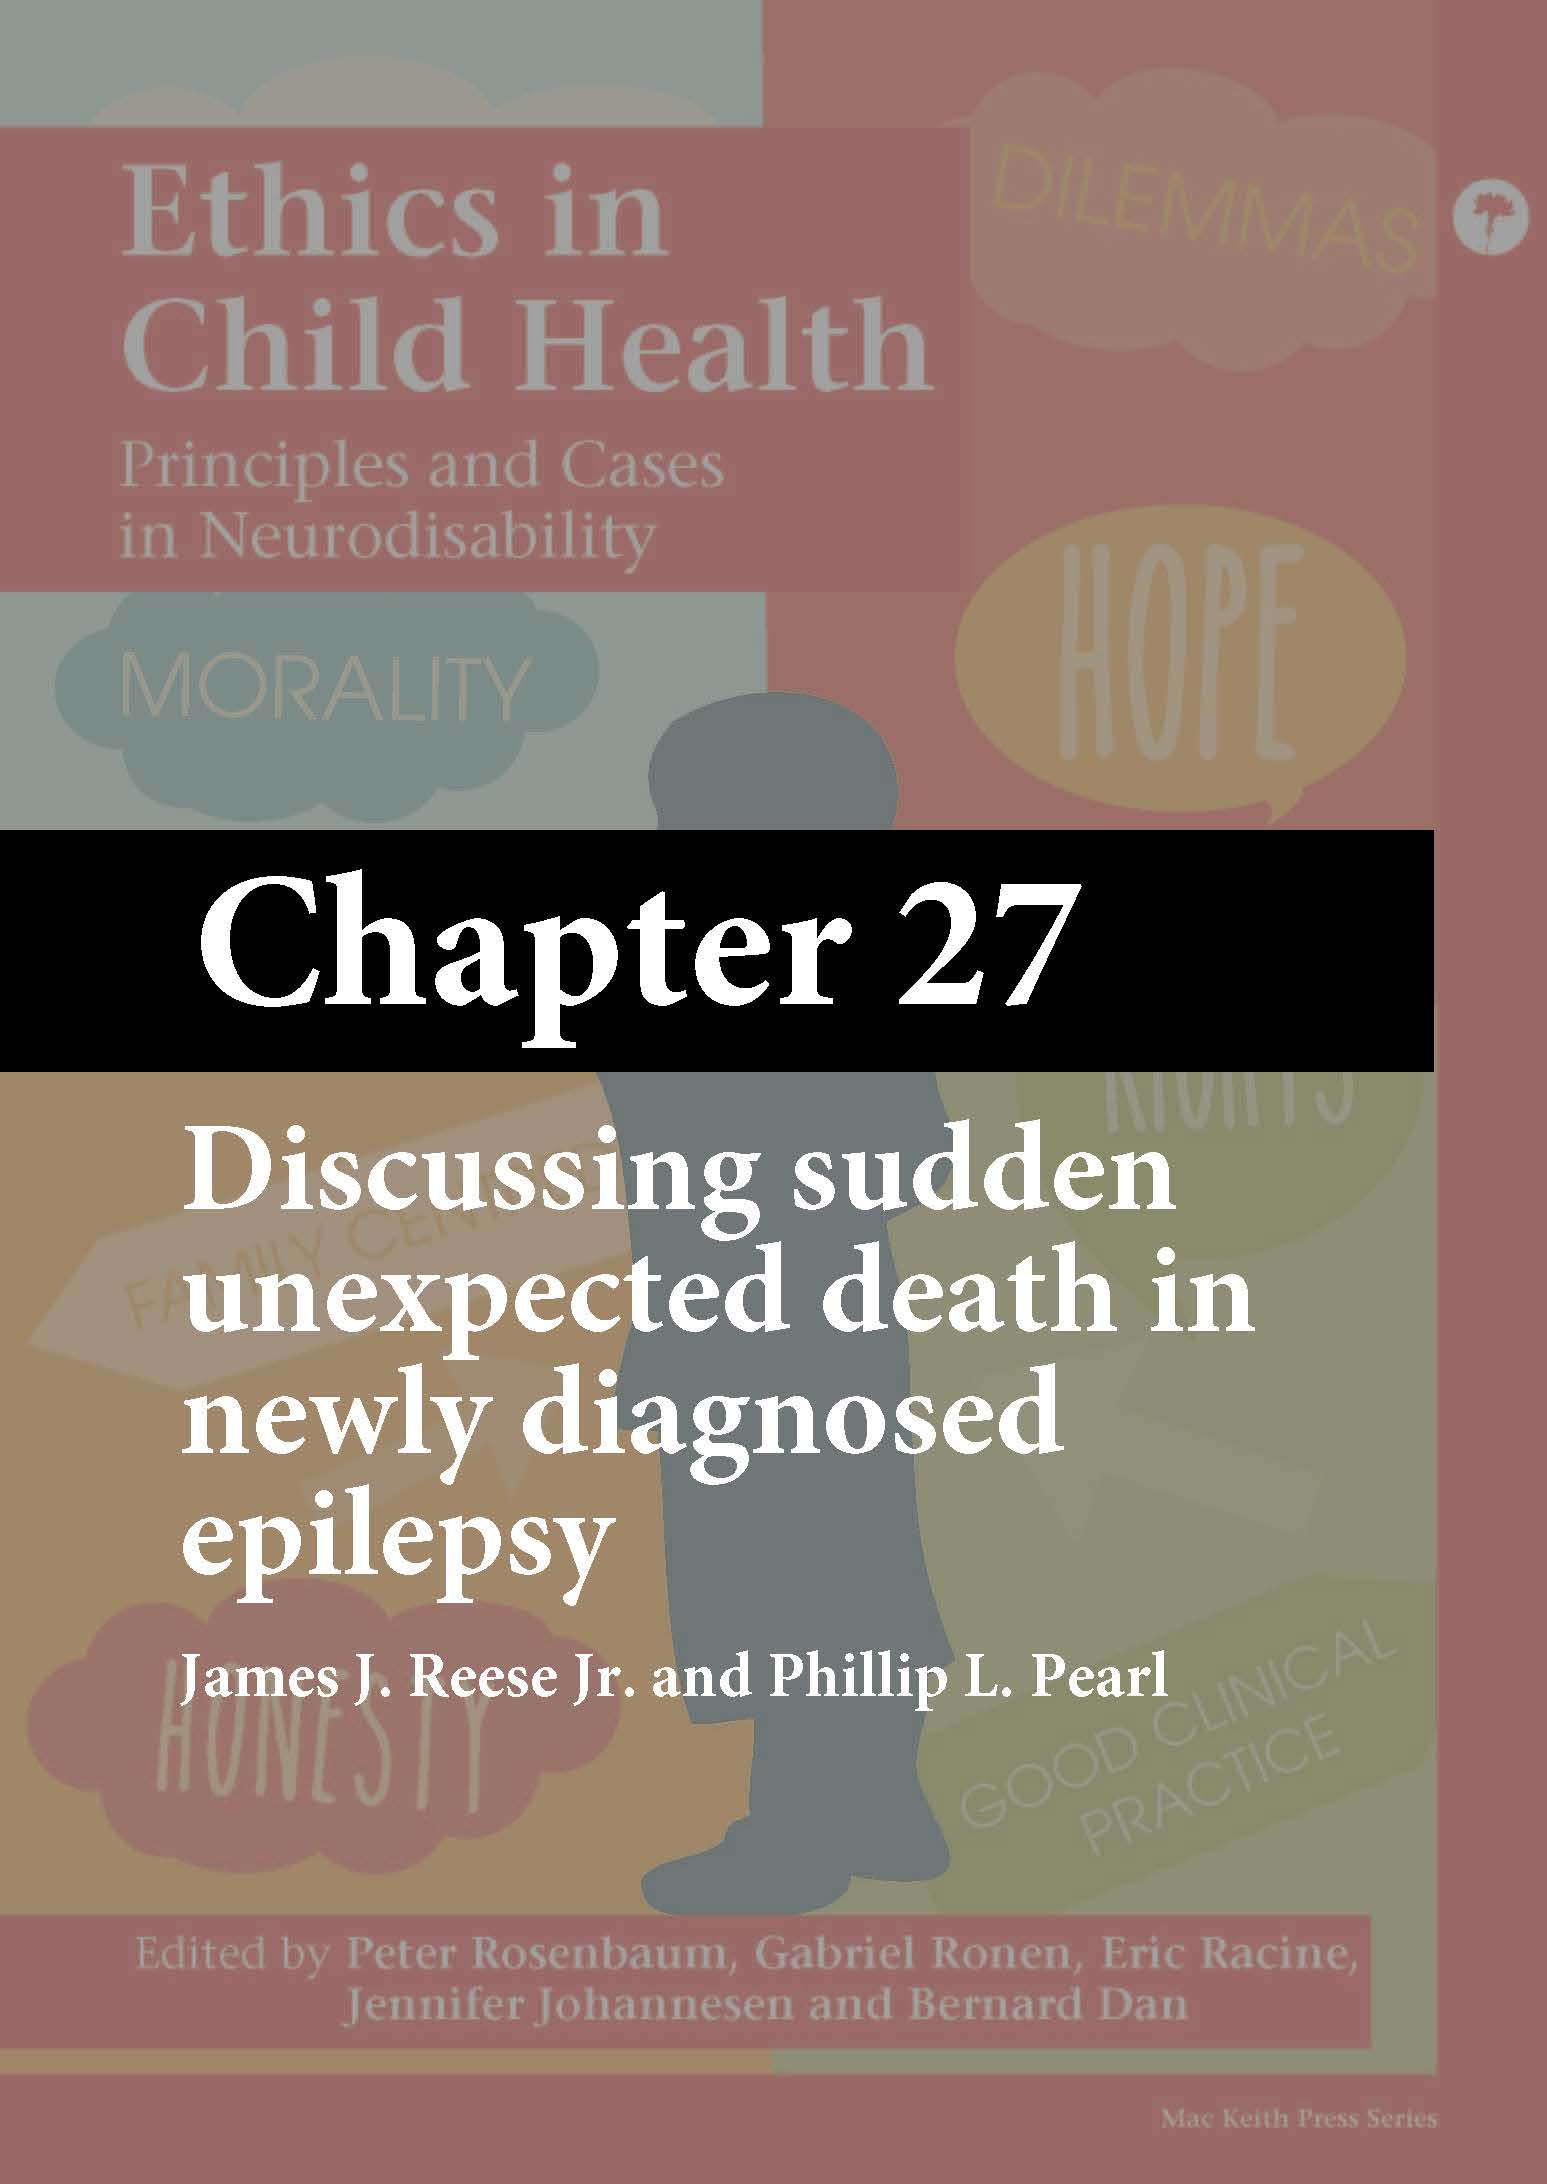 Ethics in Child Health, Rosenbaum, Chapter 27 cover